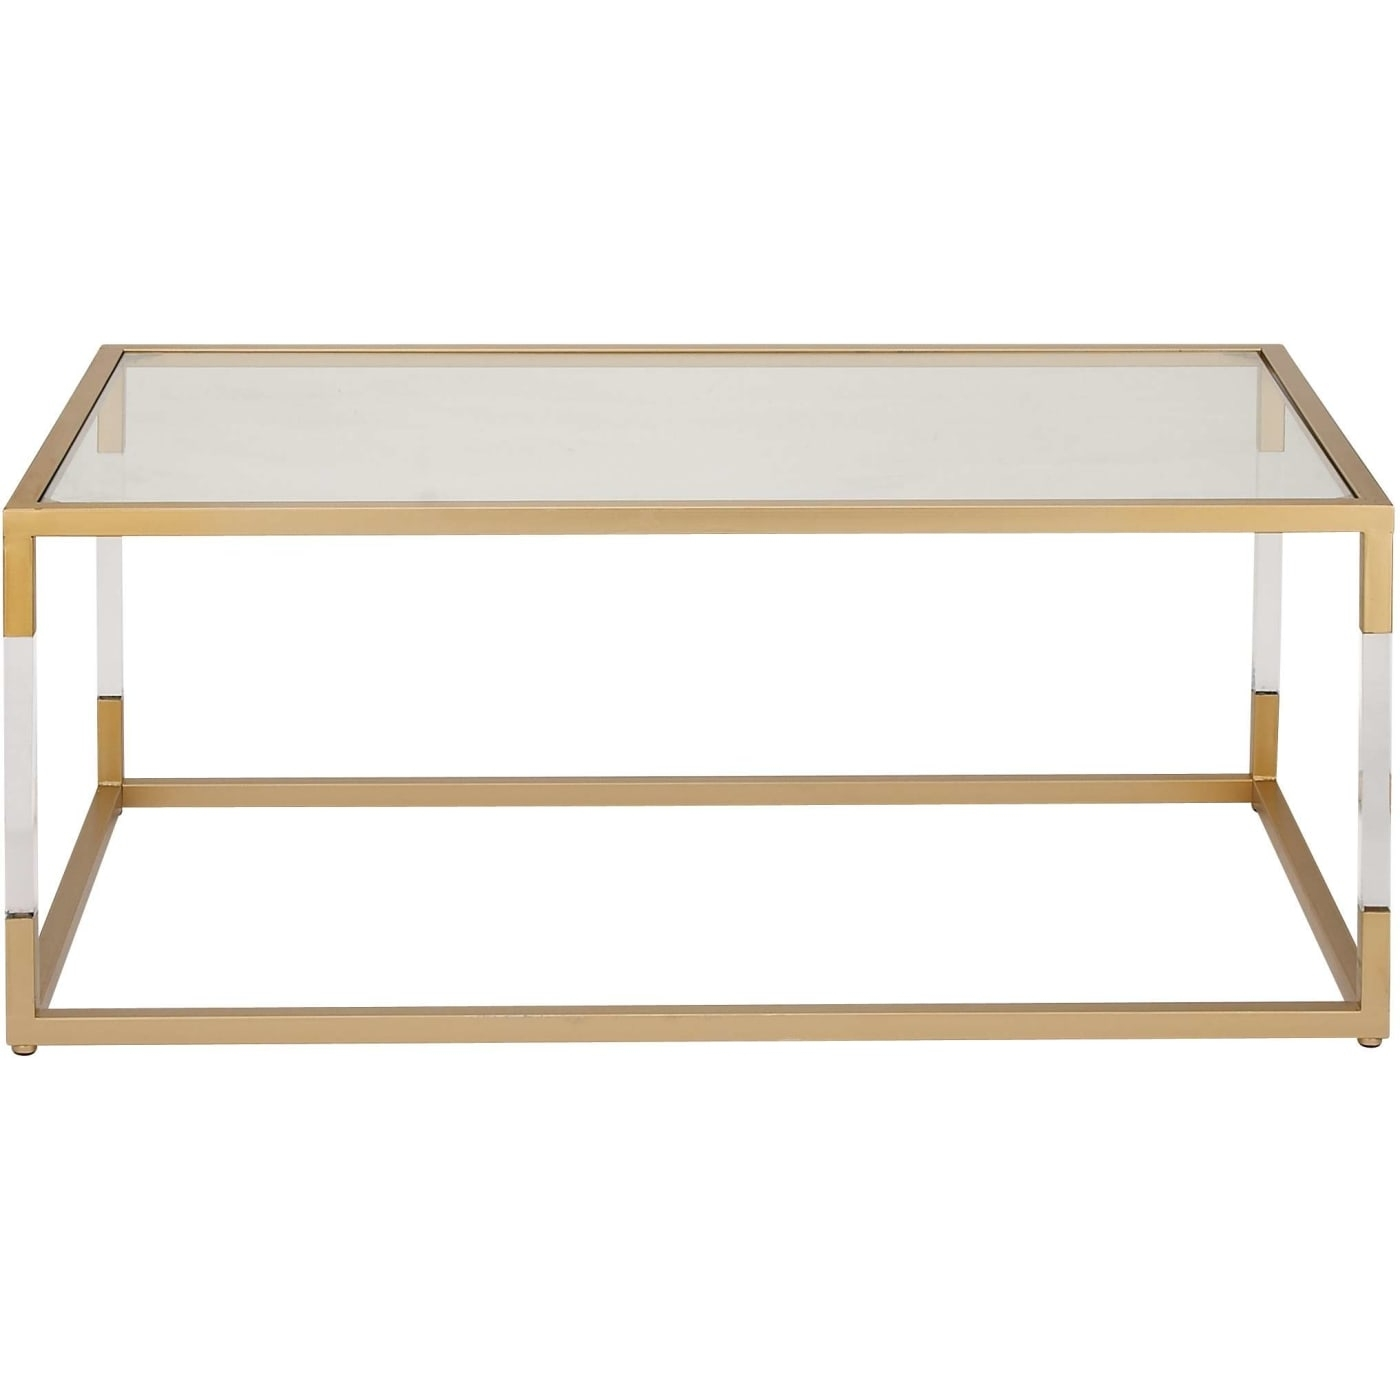 Dec Mode Collection Modern Reflections Metal Glass Acrylic Coffee intended for Modern Acrylic Coffee Tables (Image 13 of 30)